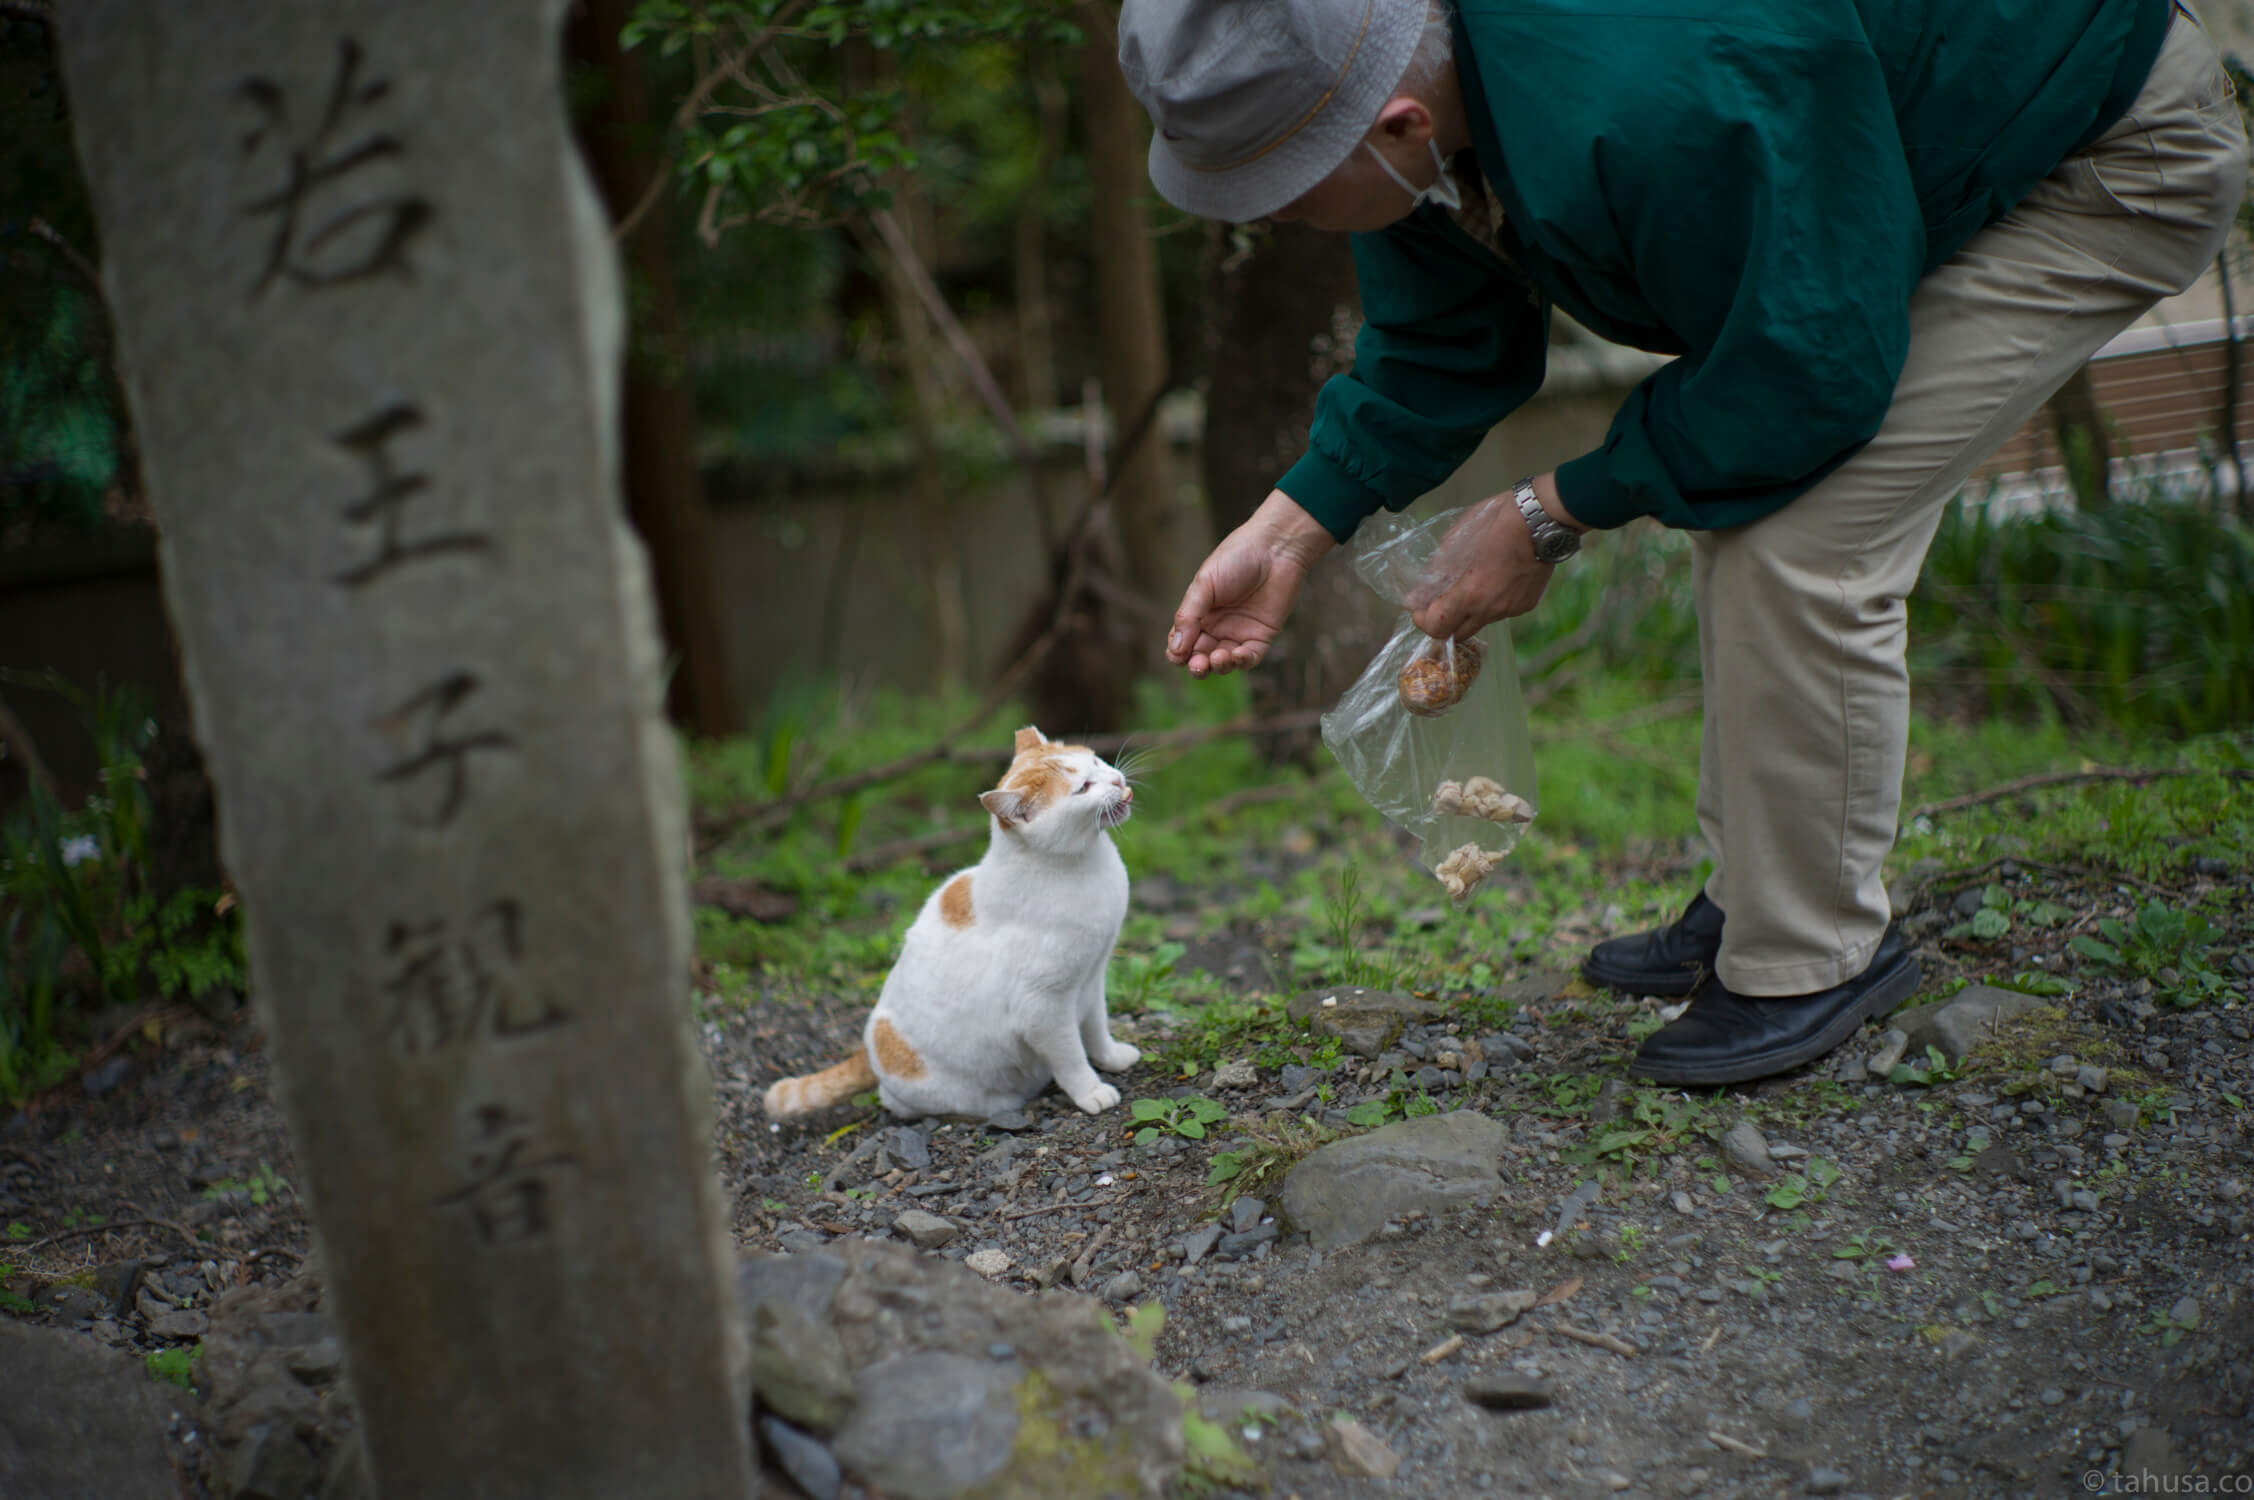 man-feeding-cat-in-Philosopher's-Walk-kyoto-sakura-season-japan-japanese-street-snap-portrait-using-leica-m9-m9p-Noctilux-50mm-50-f1-f1.0-e58-v1-digital-camera-travel